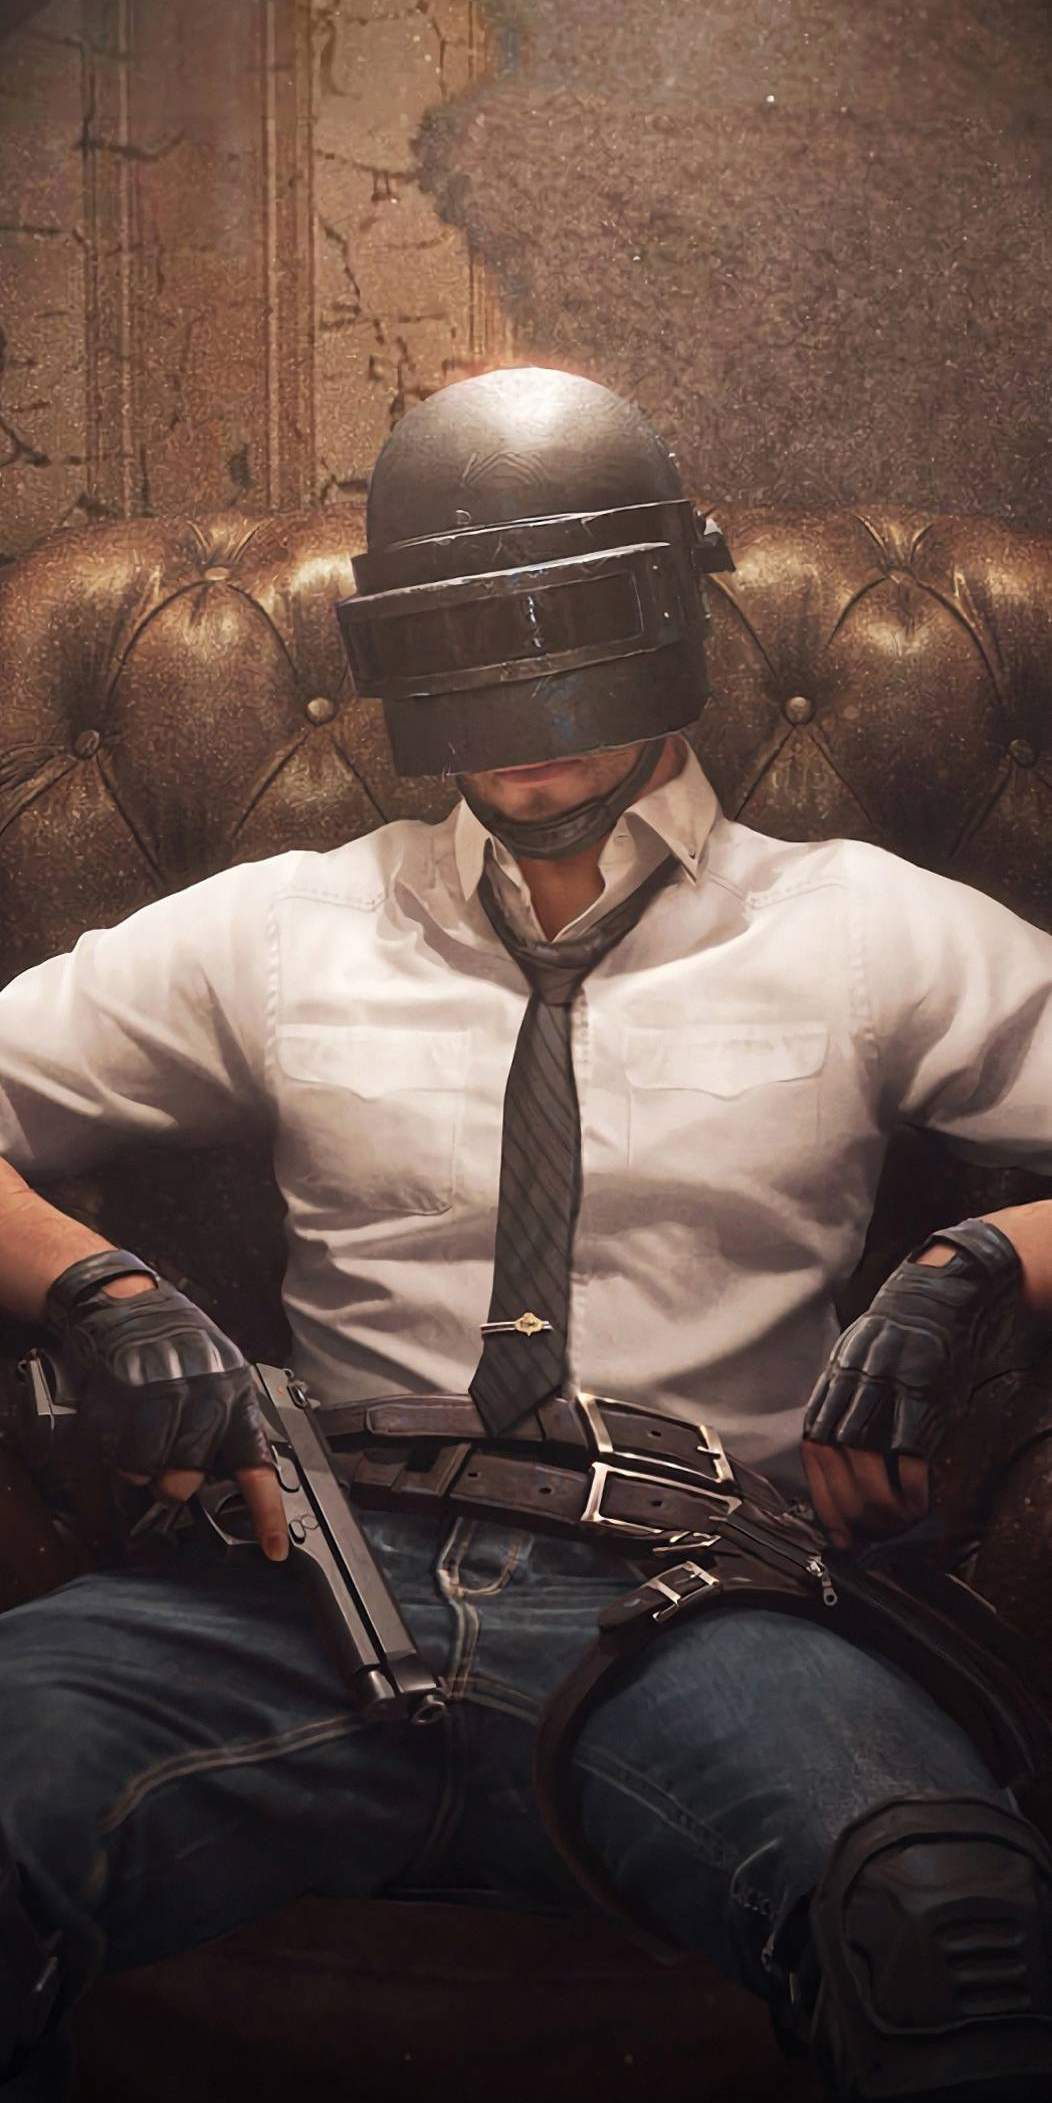 Your Cute Wallpaper Pubg King Iphone Wallpaper Iphone Wallpapers